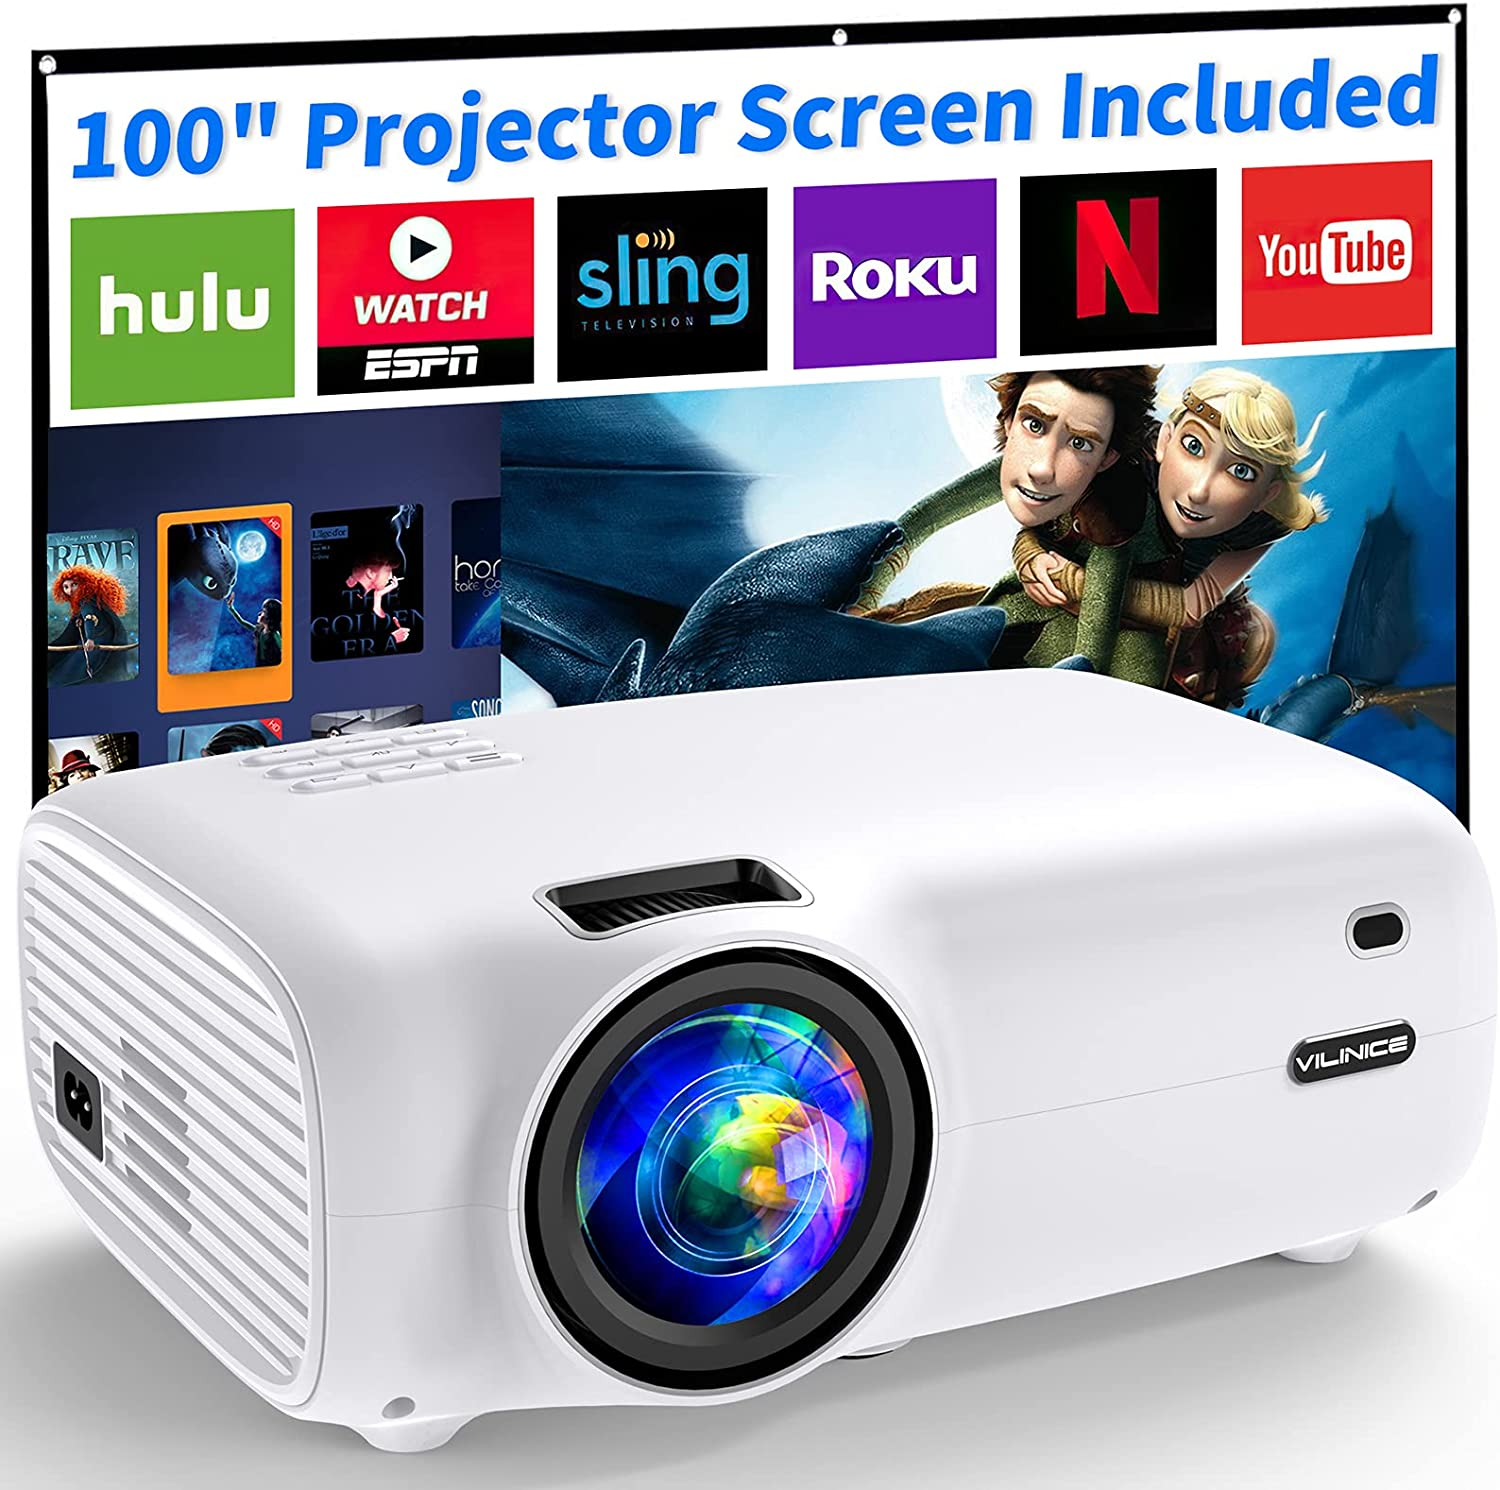 Projector 1080P Supported, ViliNice 6500Lumens Mini Projector Full HD Video Projector, Home Movie 240